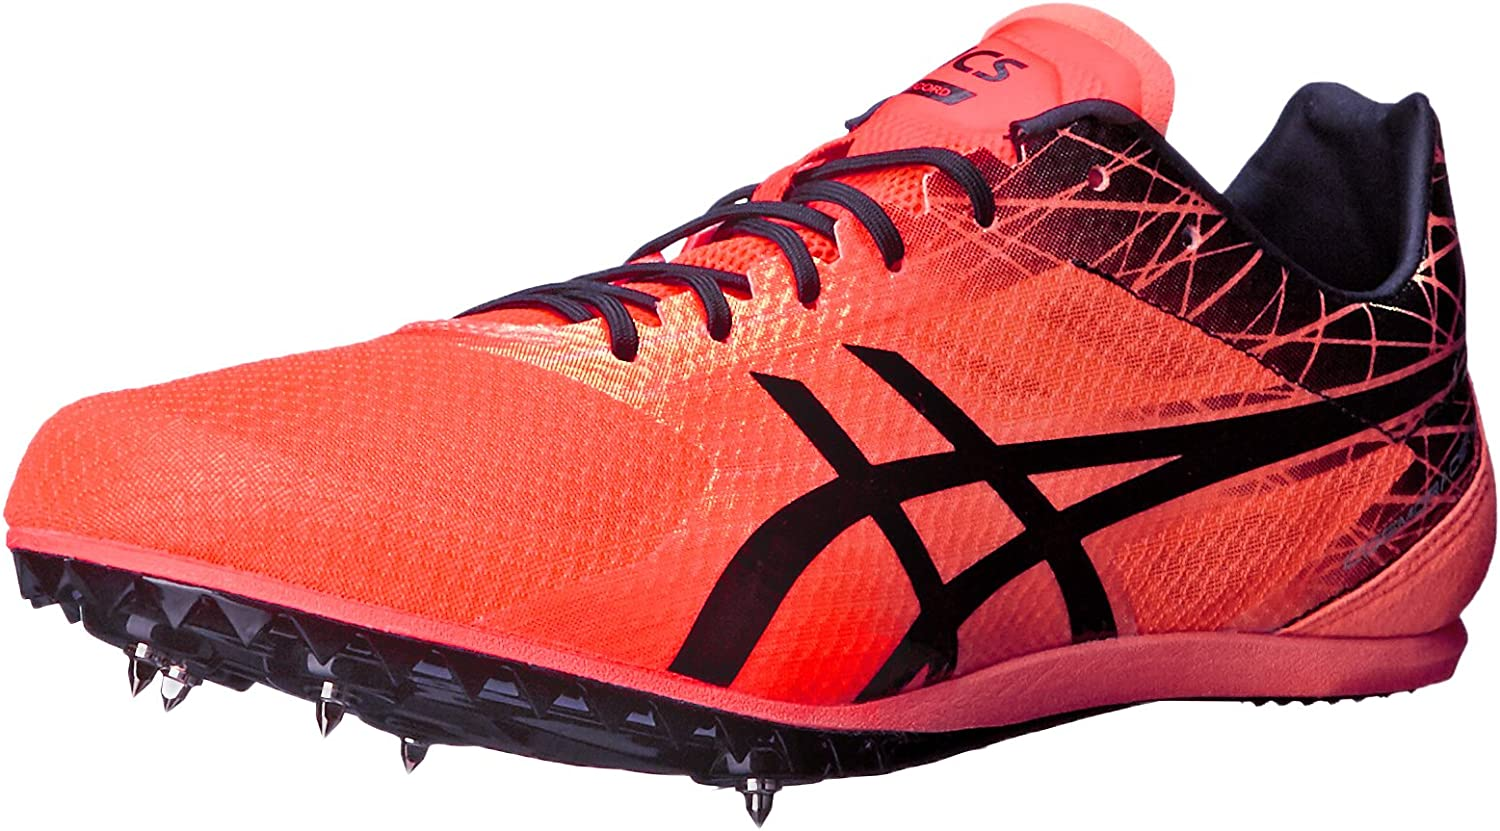 empleo Sotavento filosofía  ASICS Men's Cosmoracer Md Track Shoe, Flash Coral/Black, 12.5 M US:  Amazon.ca: Shoes & Handbags